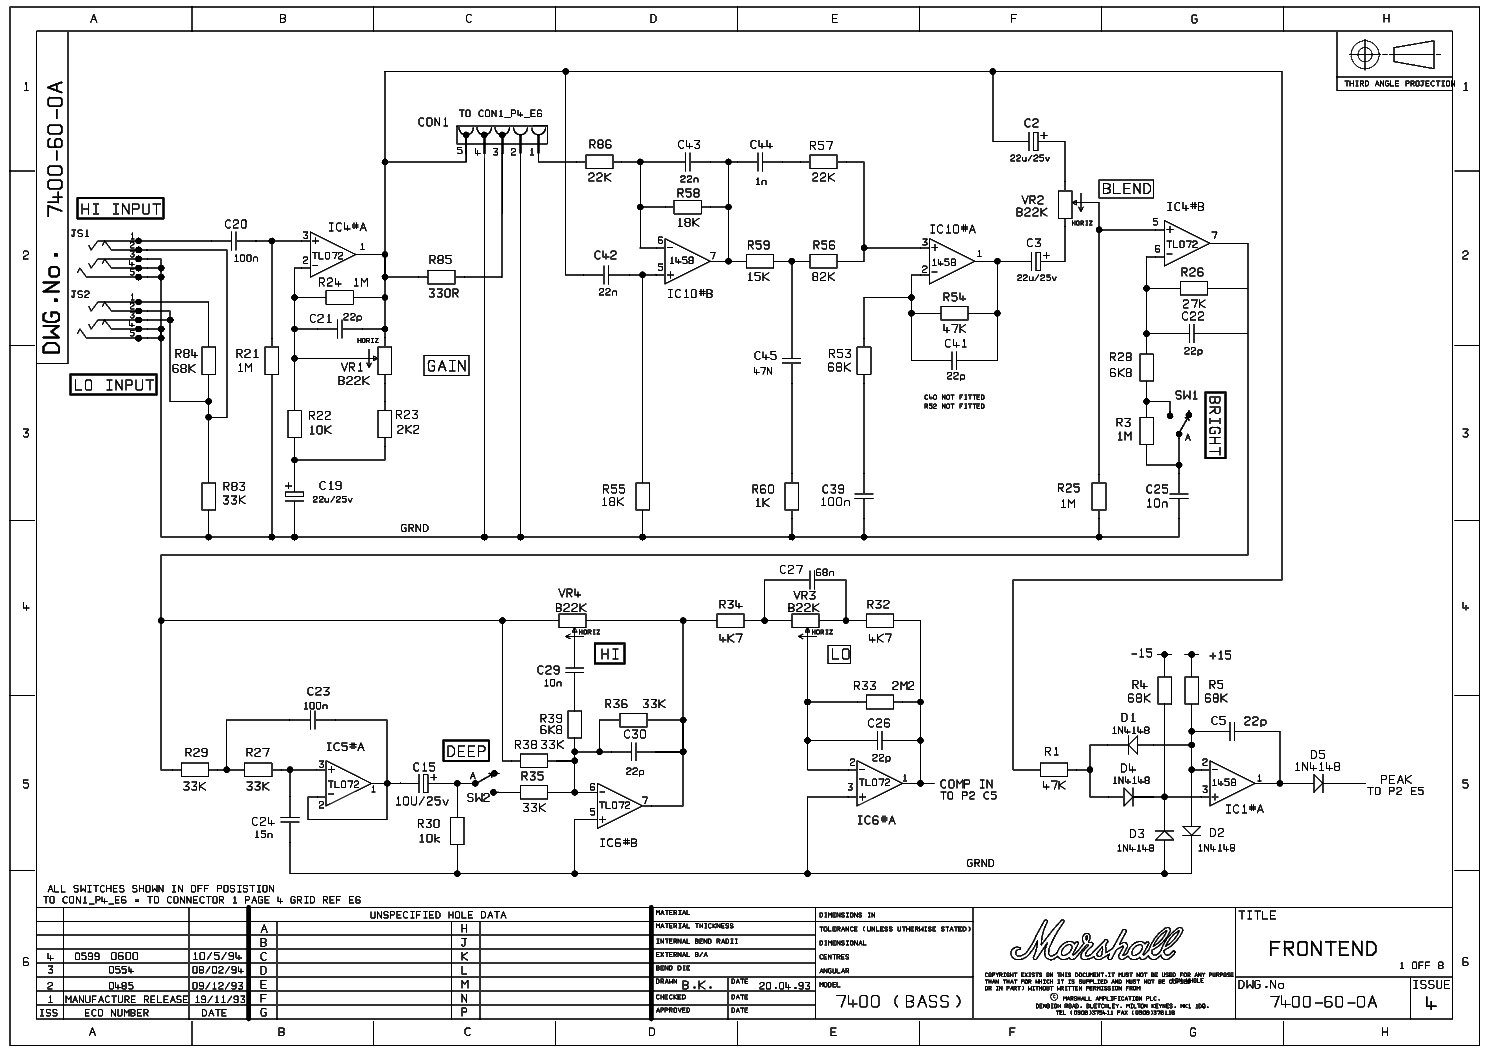 MARSHALL DBS 400W 7400 service manual (1st page)